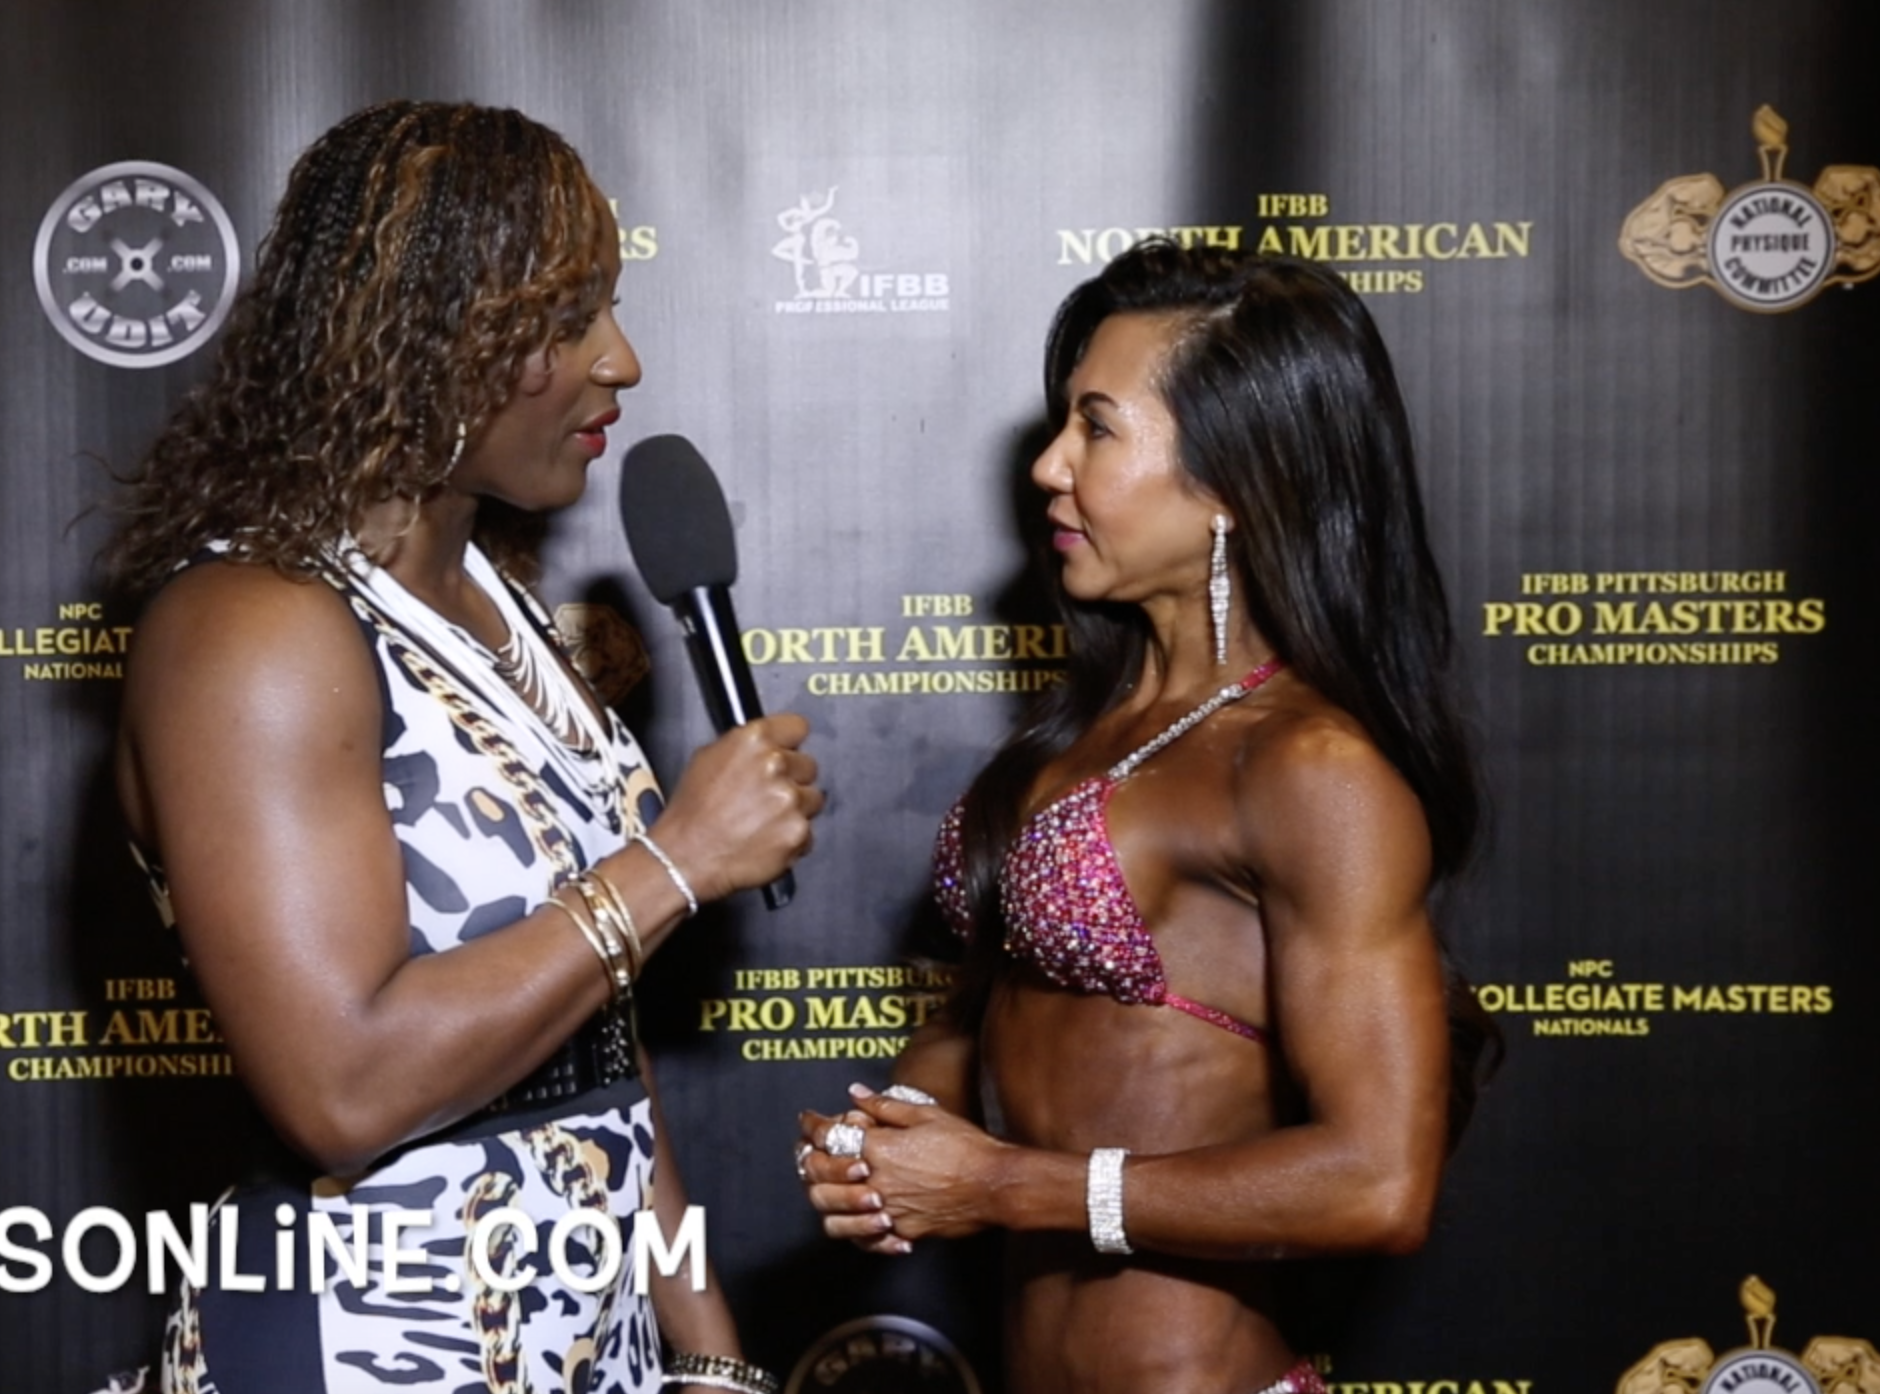 2017 IFBB PITTSBURGH PRO MASTERS PRO BIKINI OVER 35 & 40 WINNER KAYLA LE & OVER 45 WINNER ANGELA KEGLER VIDEOS